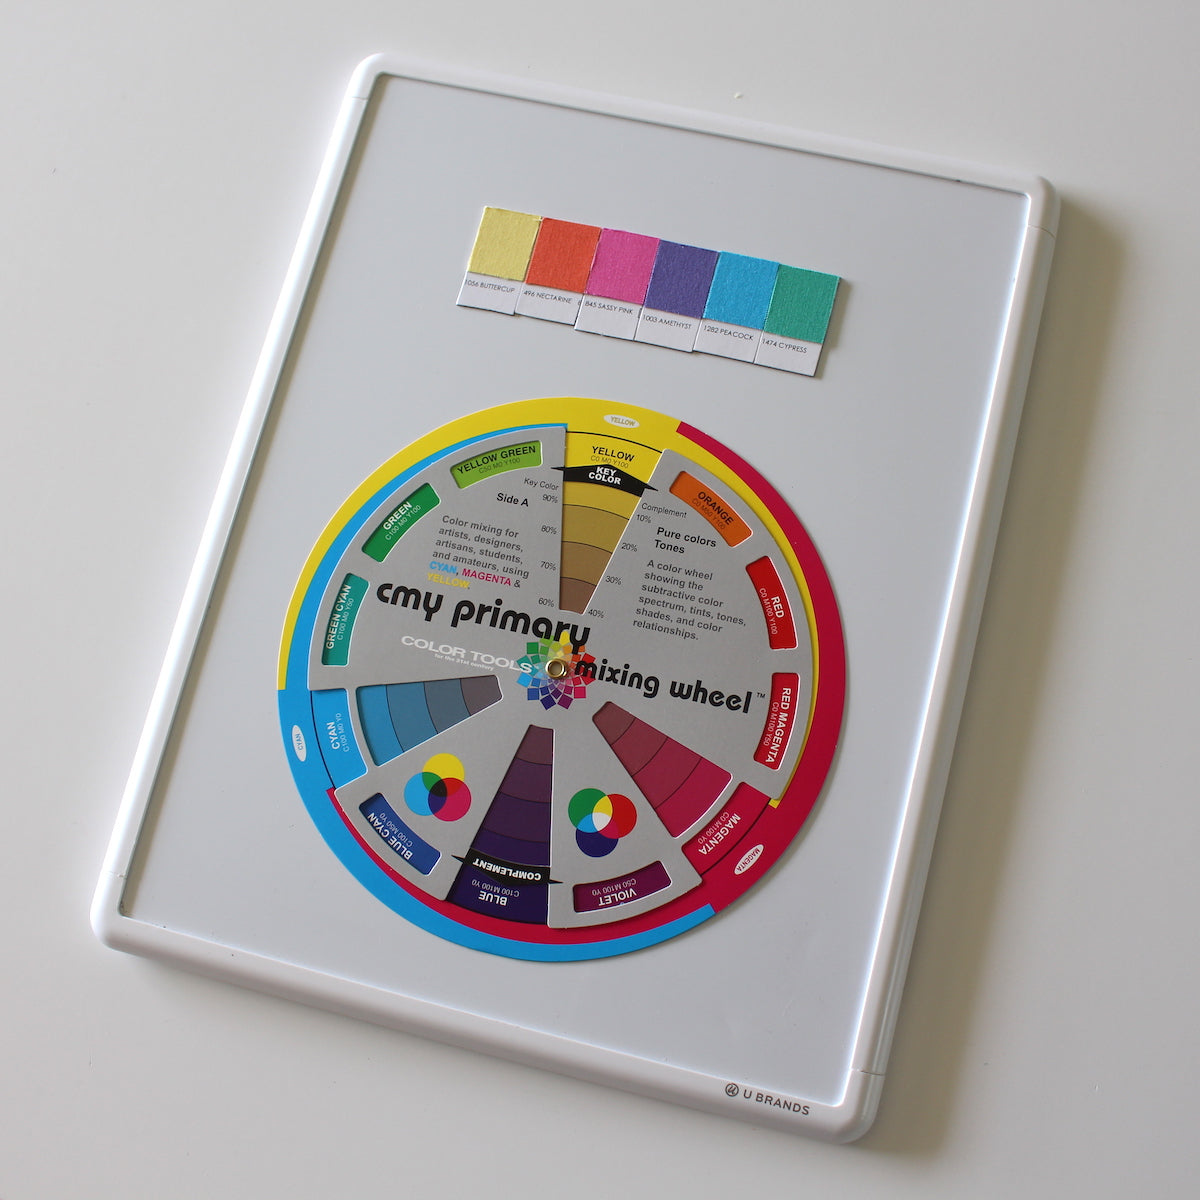 CMY color wheel and palette of Kona Cotton fabric swatches